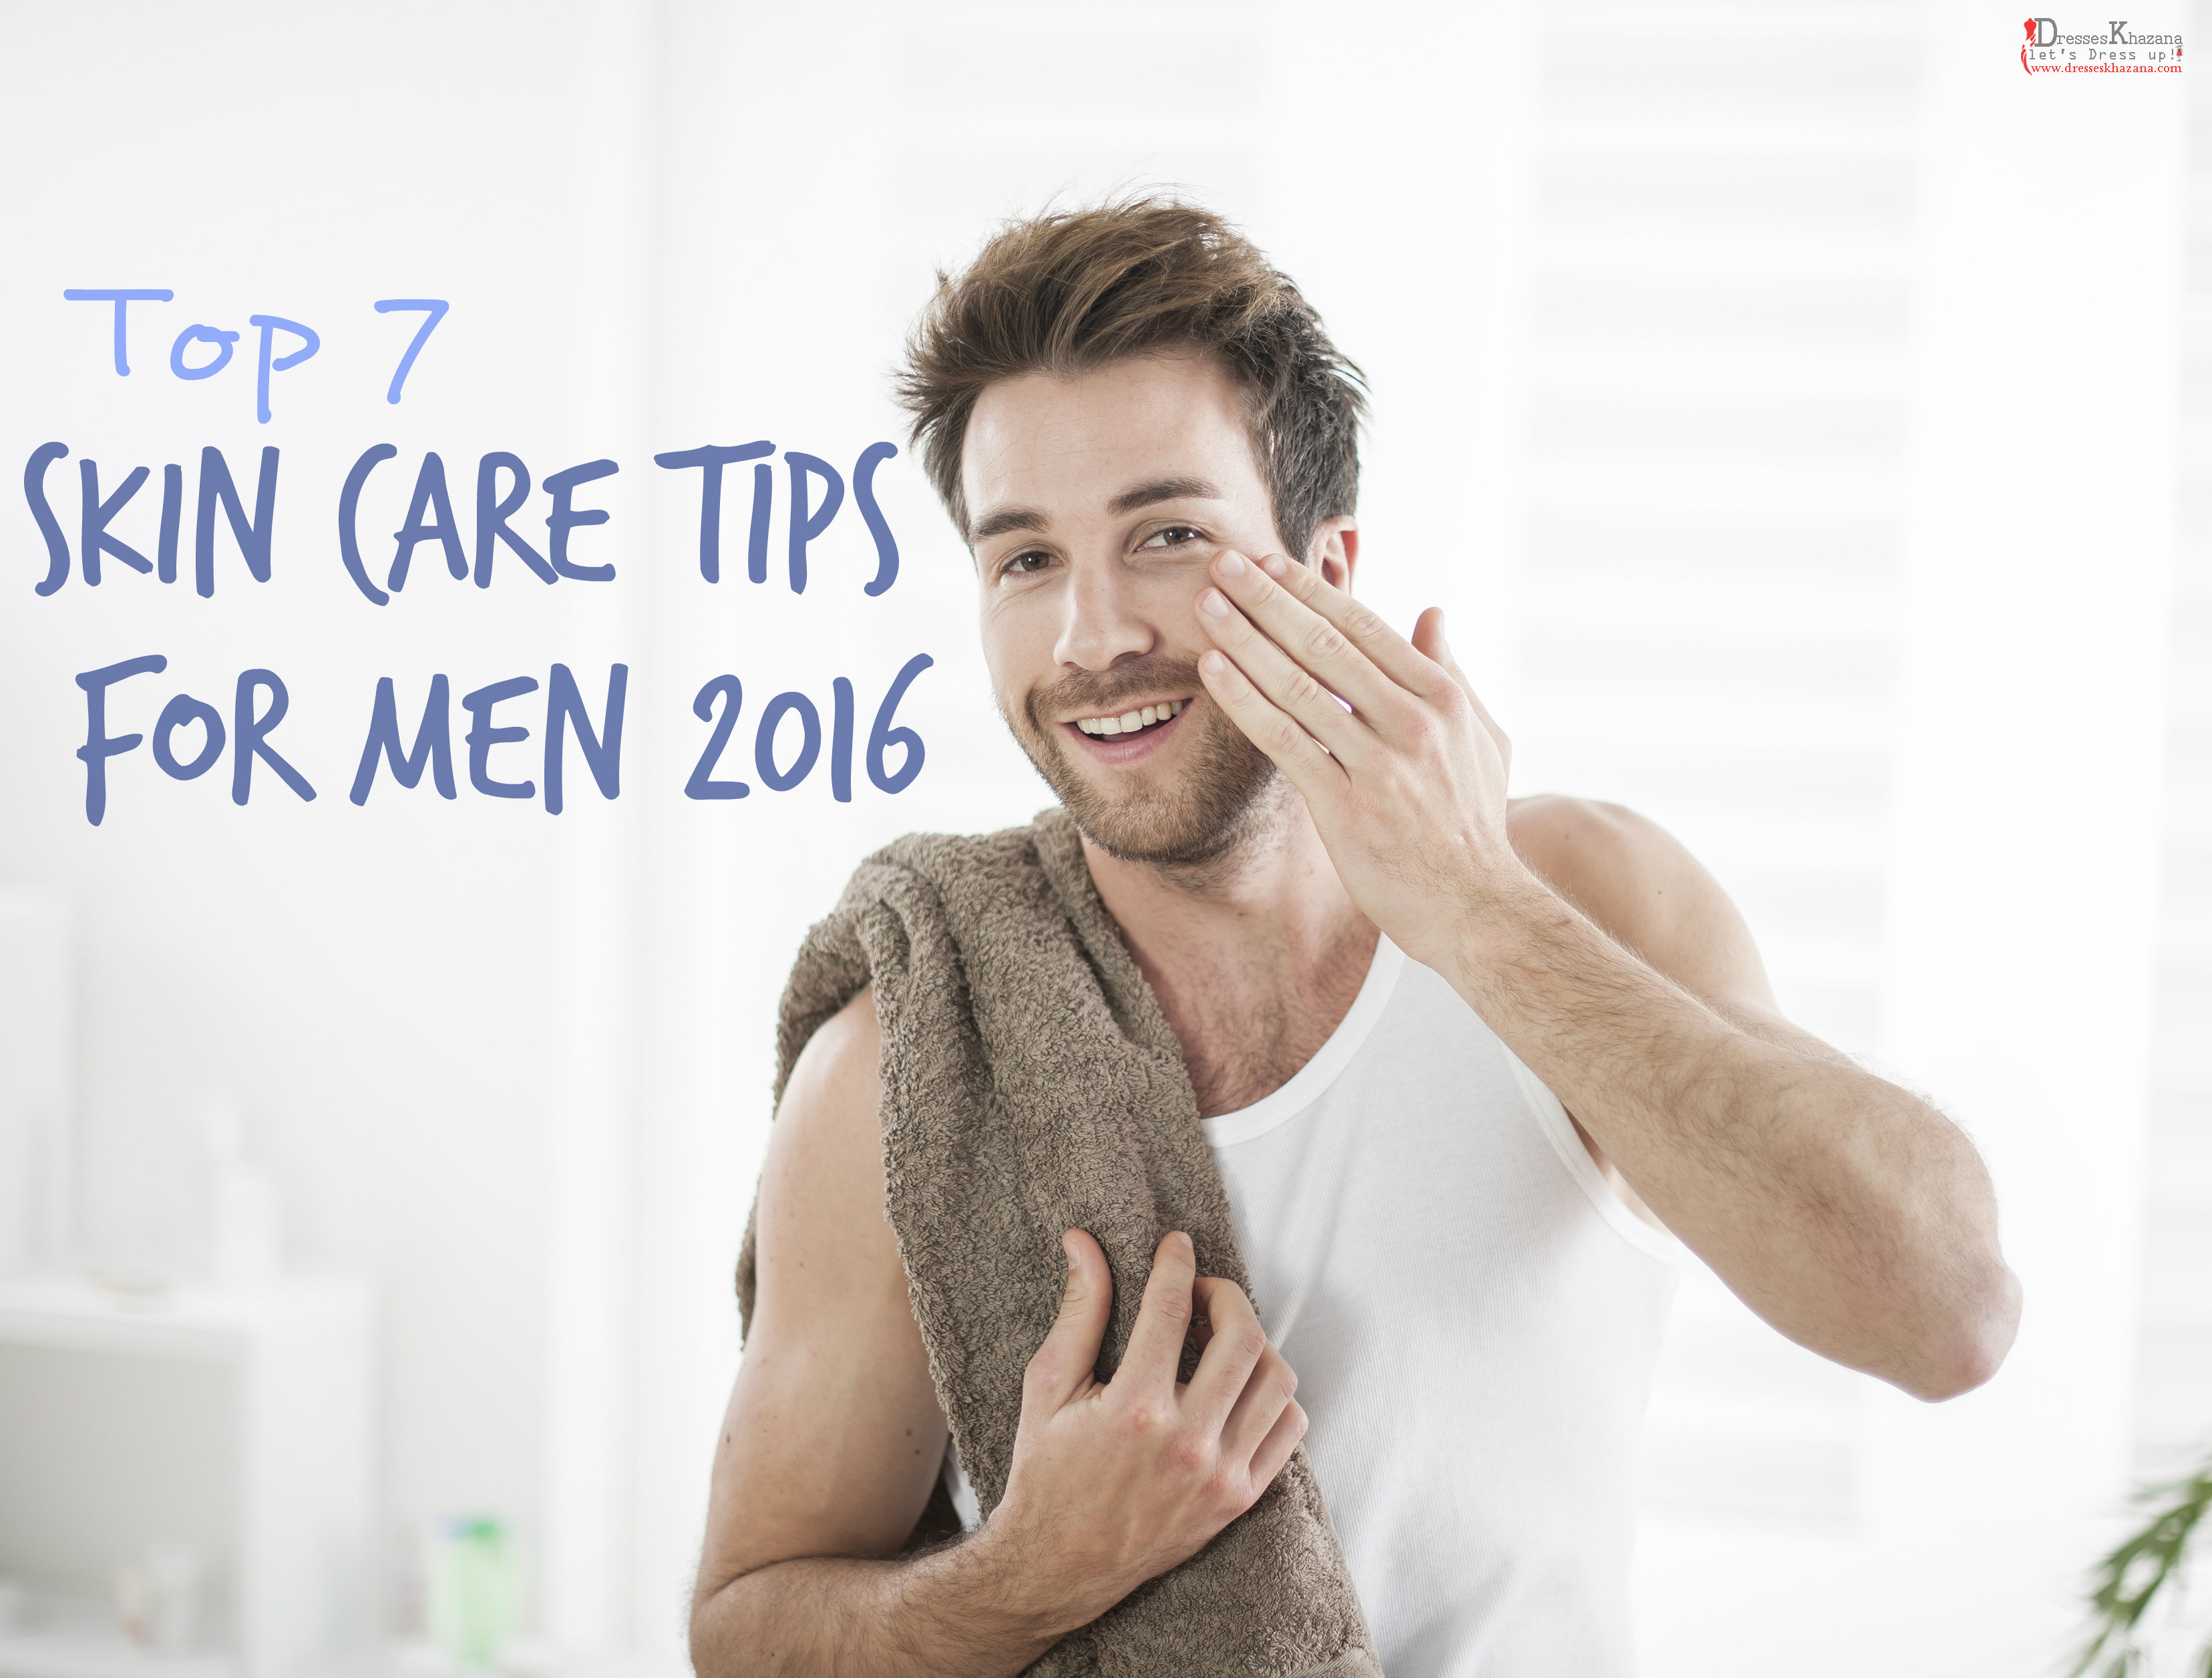 skin care tips for men 2016 and some essential points